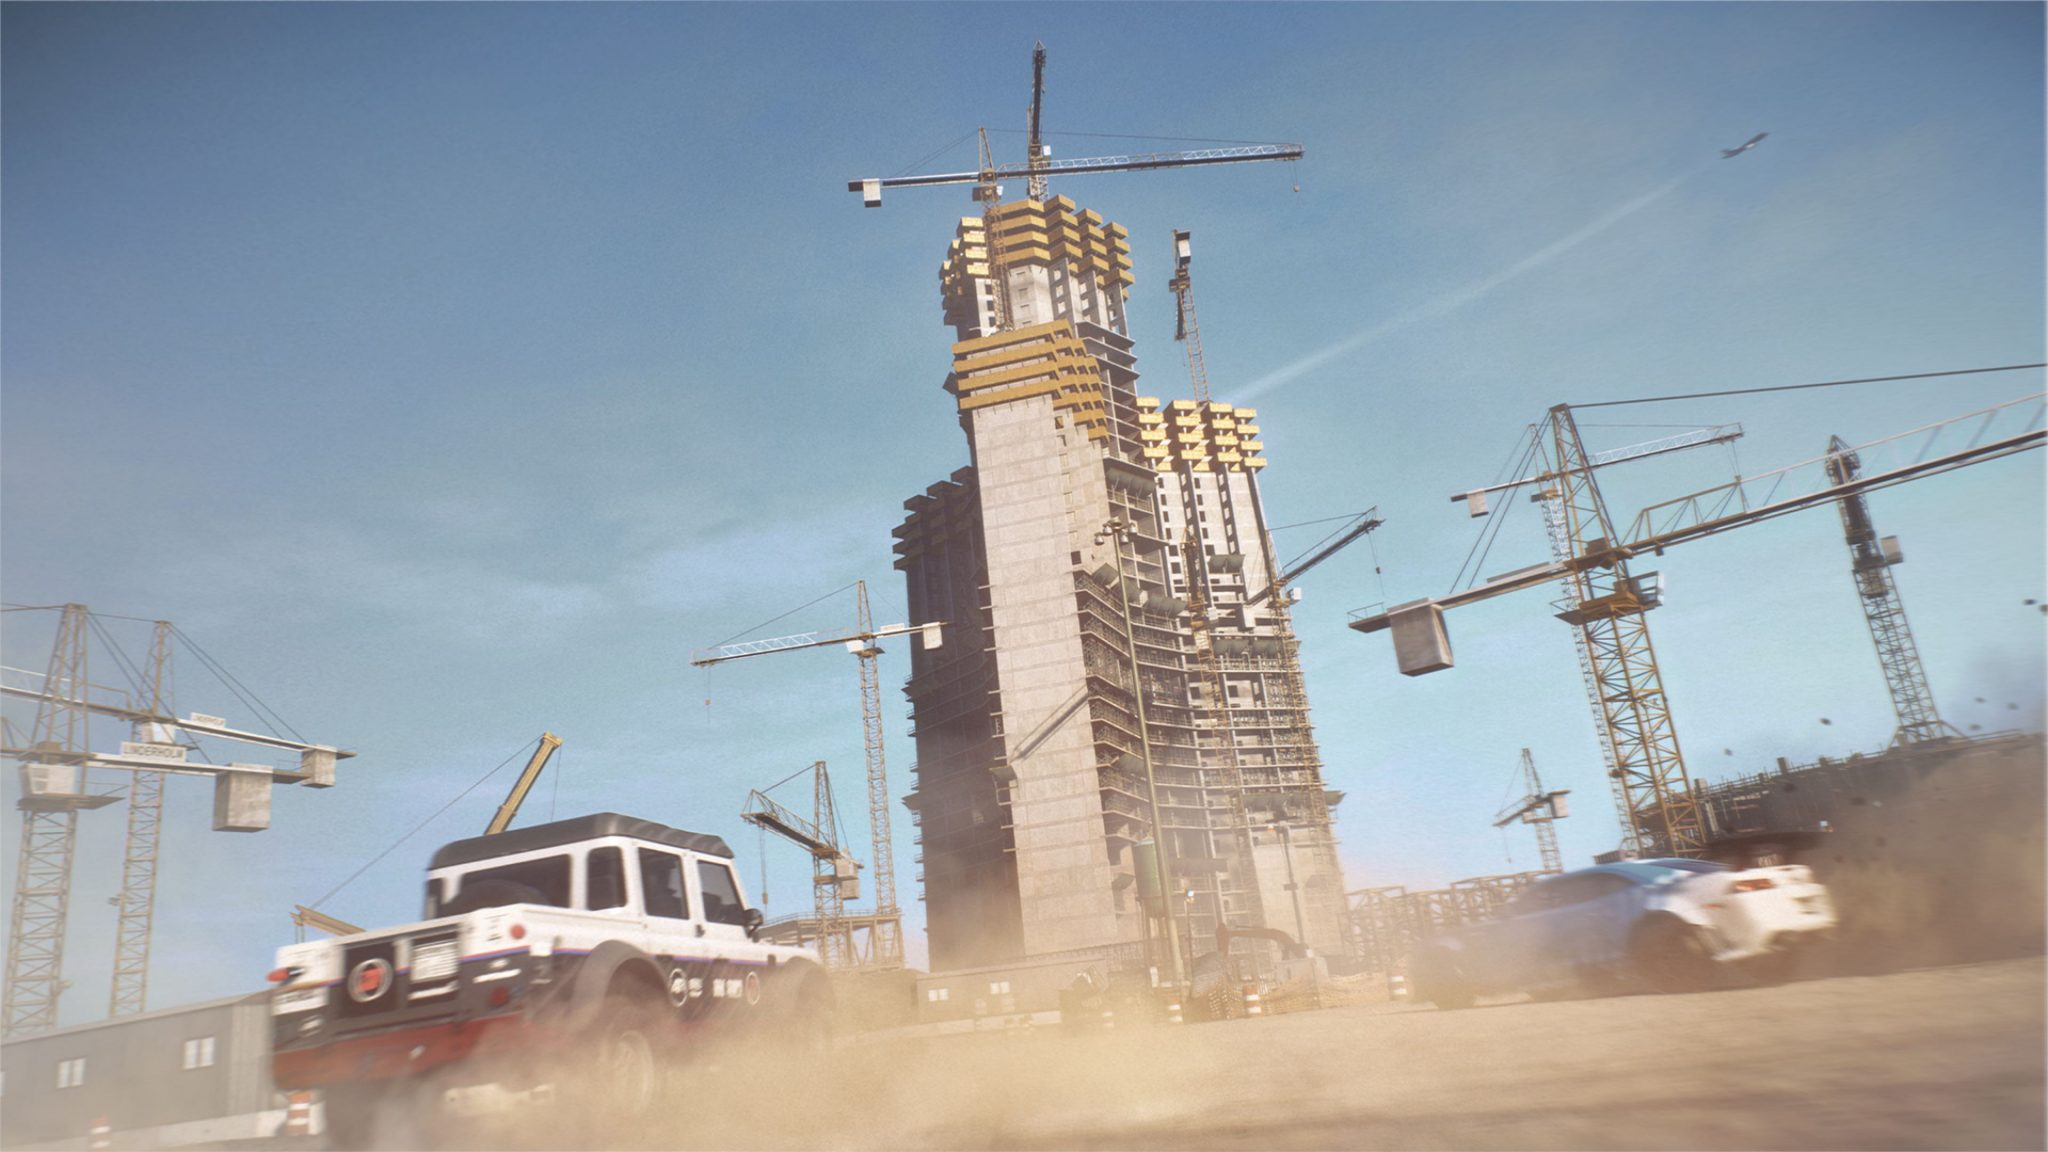 Need For Speed Payback Full Map Revealed New Gameplay Trailer Showcases Diverse Open World Rectify Gamingrectify Gaming